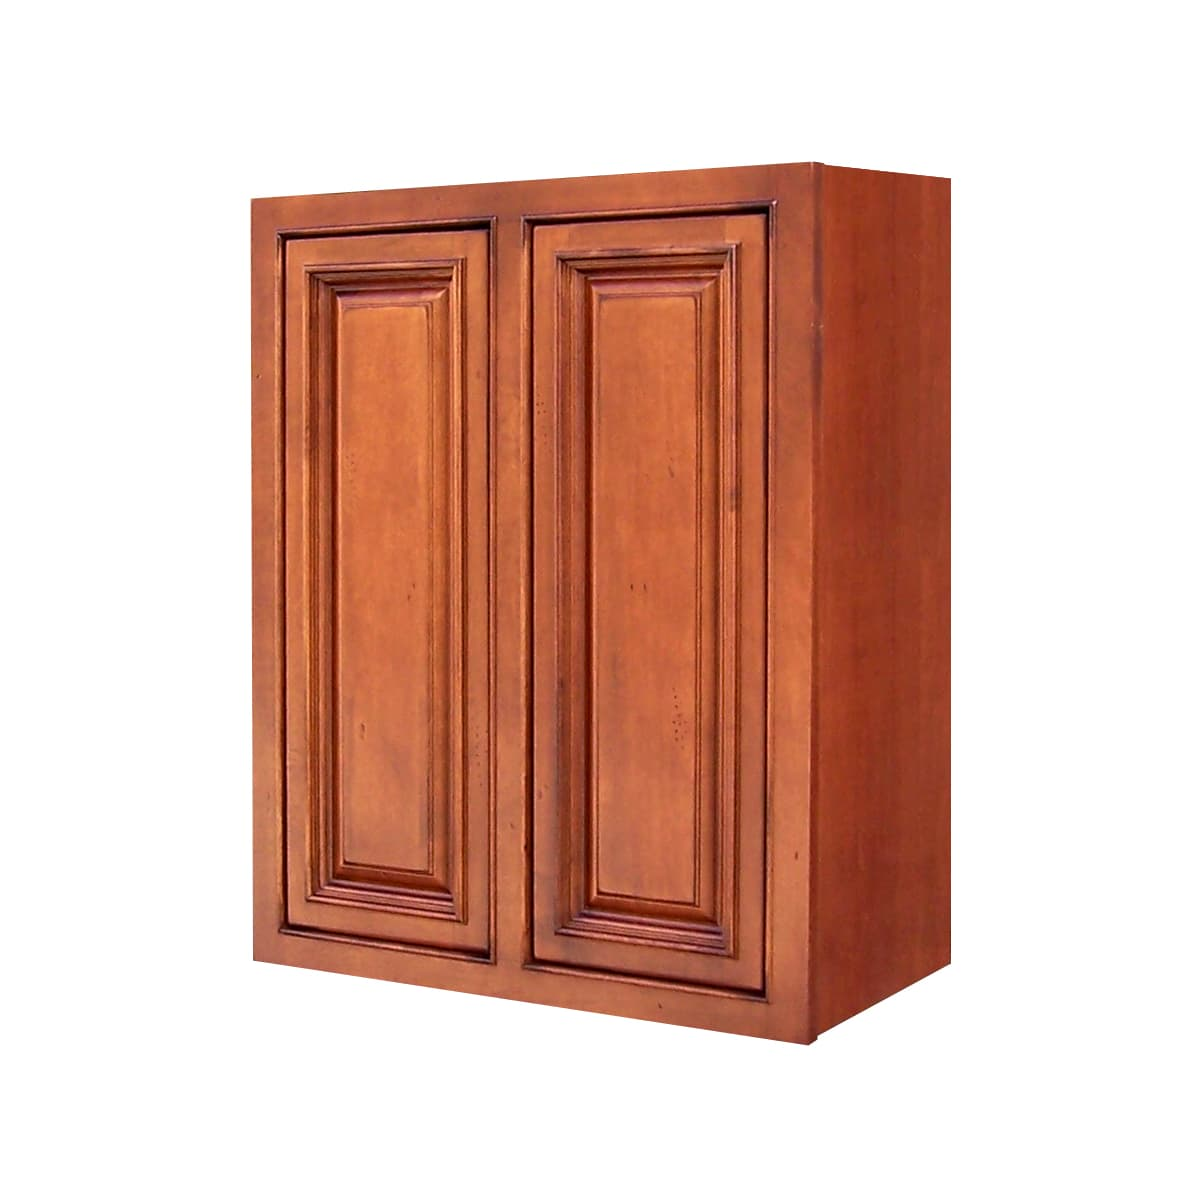 Kitchen Fire Damage Cabinet Repair Services In Dallas Fort Worth